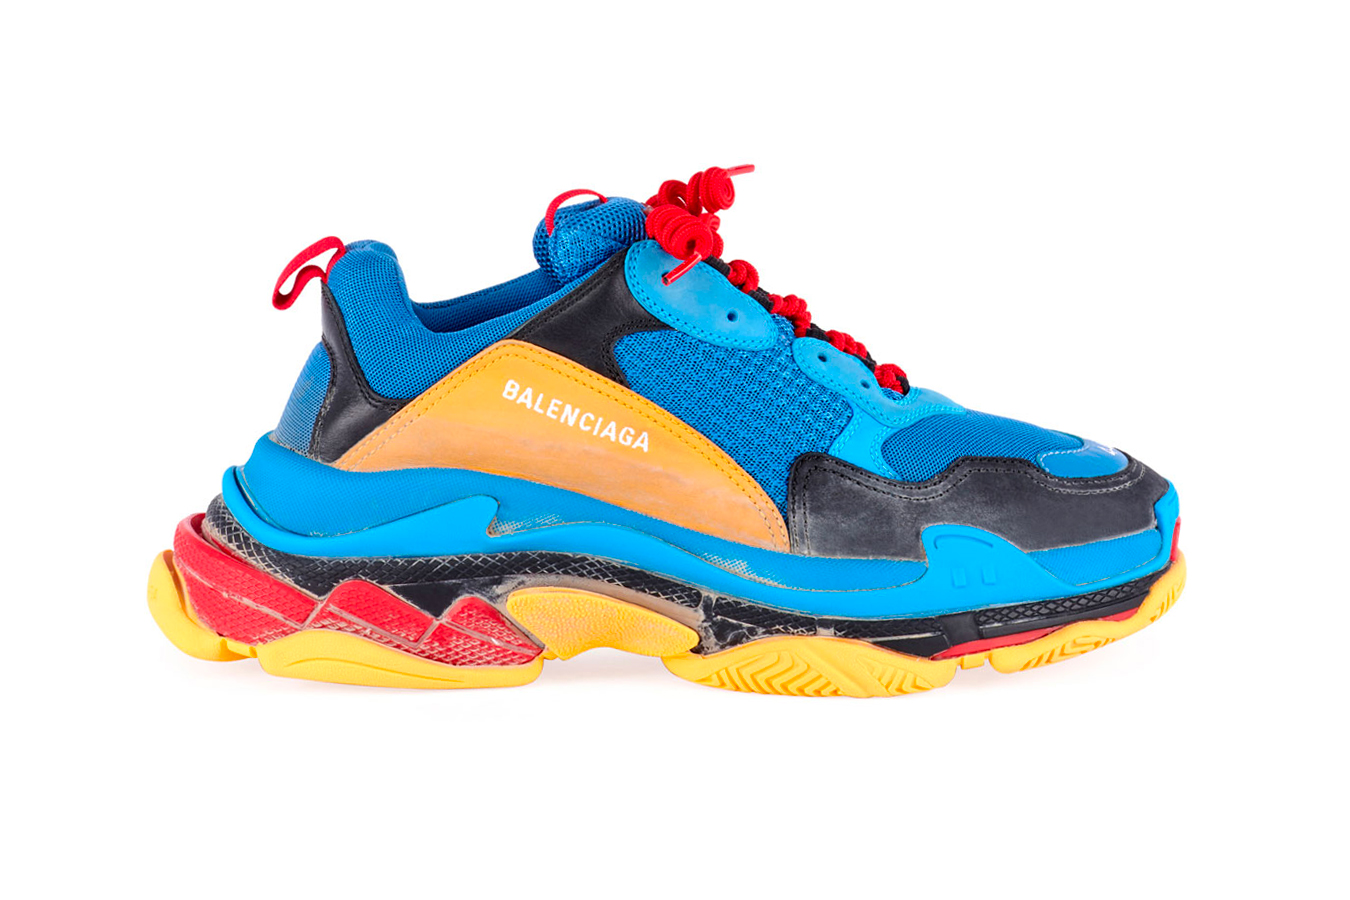 Balenciaga Triple S Blue Orange black yellow red release info sneakers